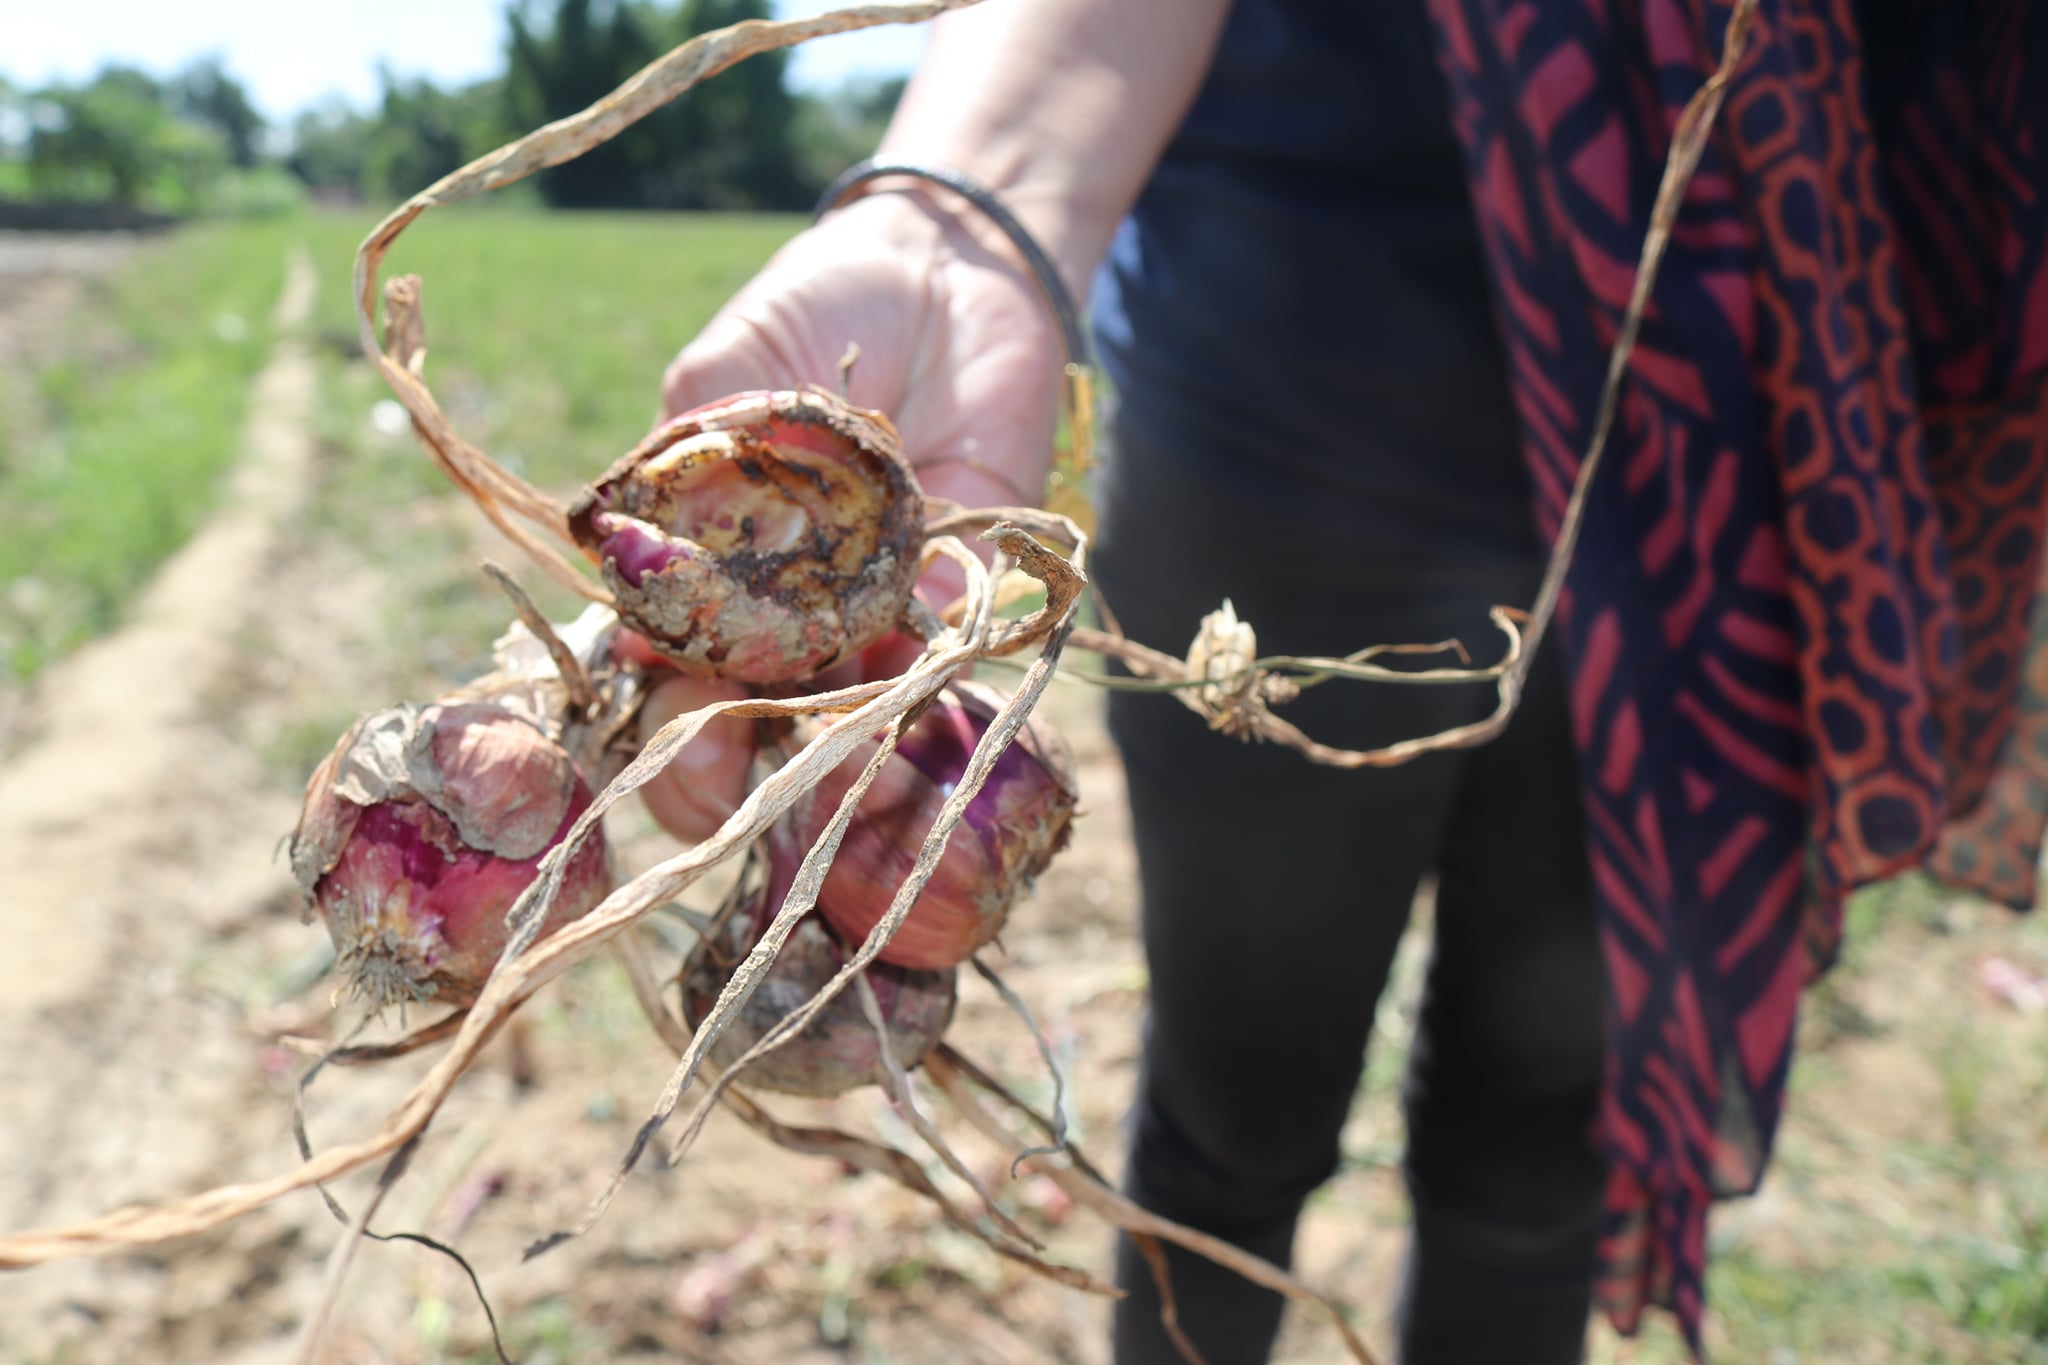 DA Provides Pest Control Interventions to Pest-Affected Onion Farms in Pangasinan